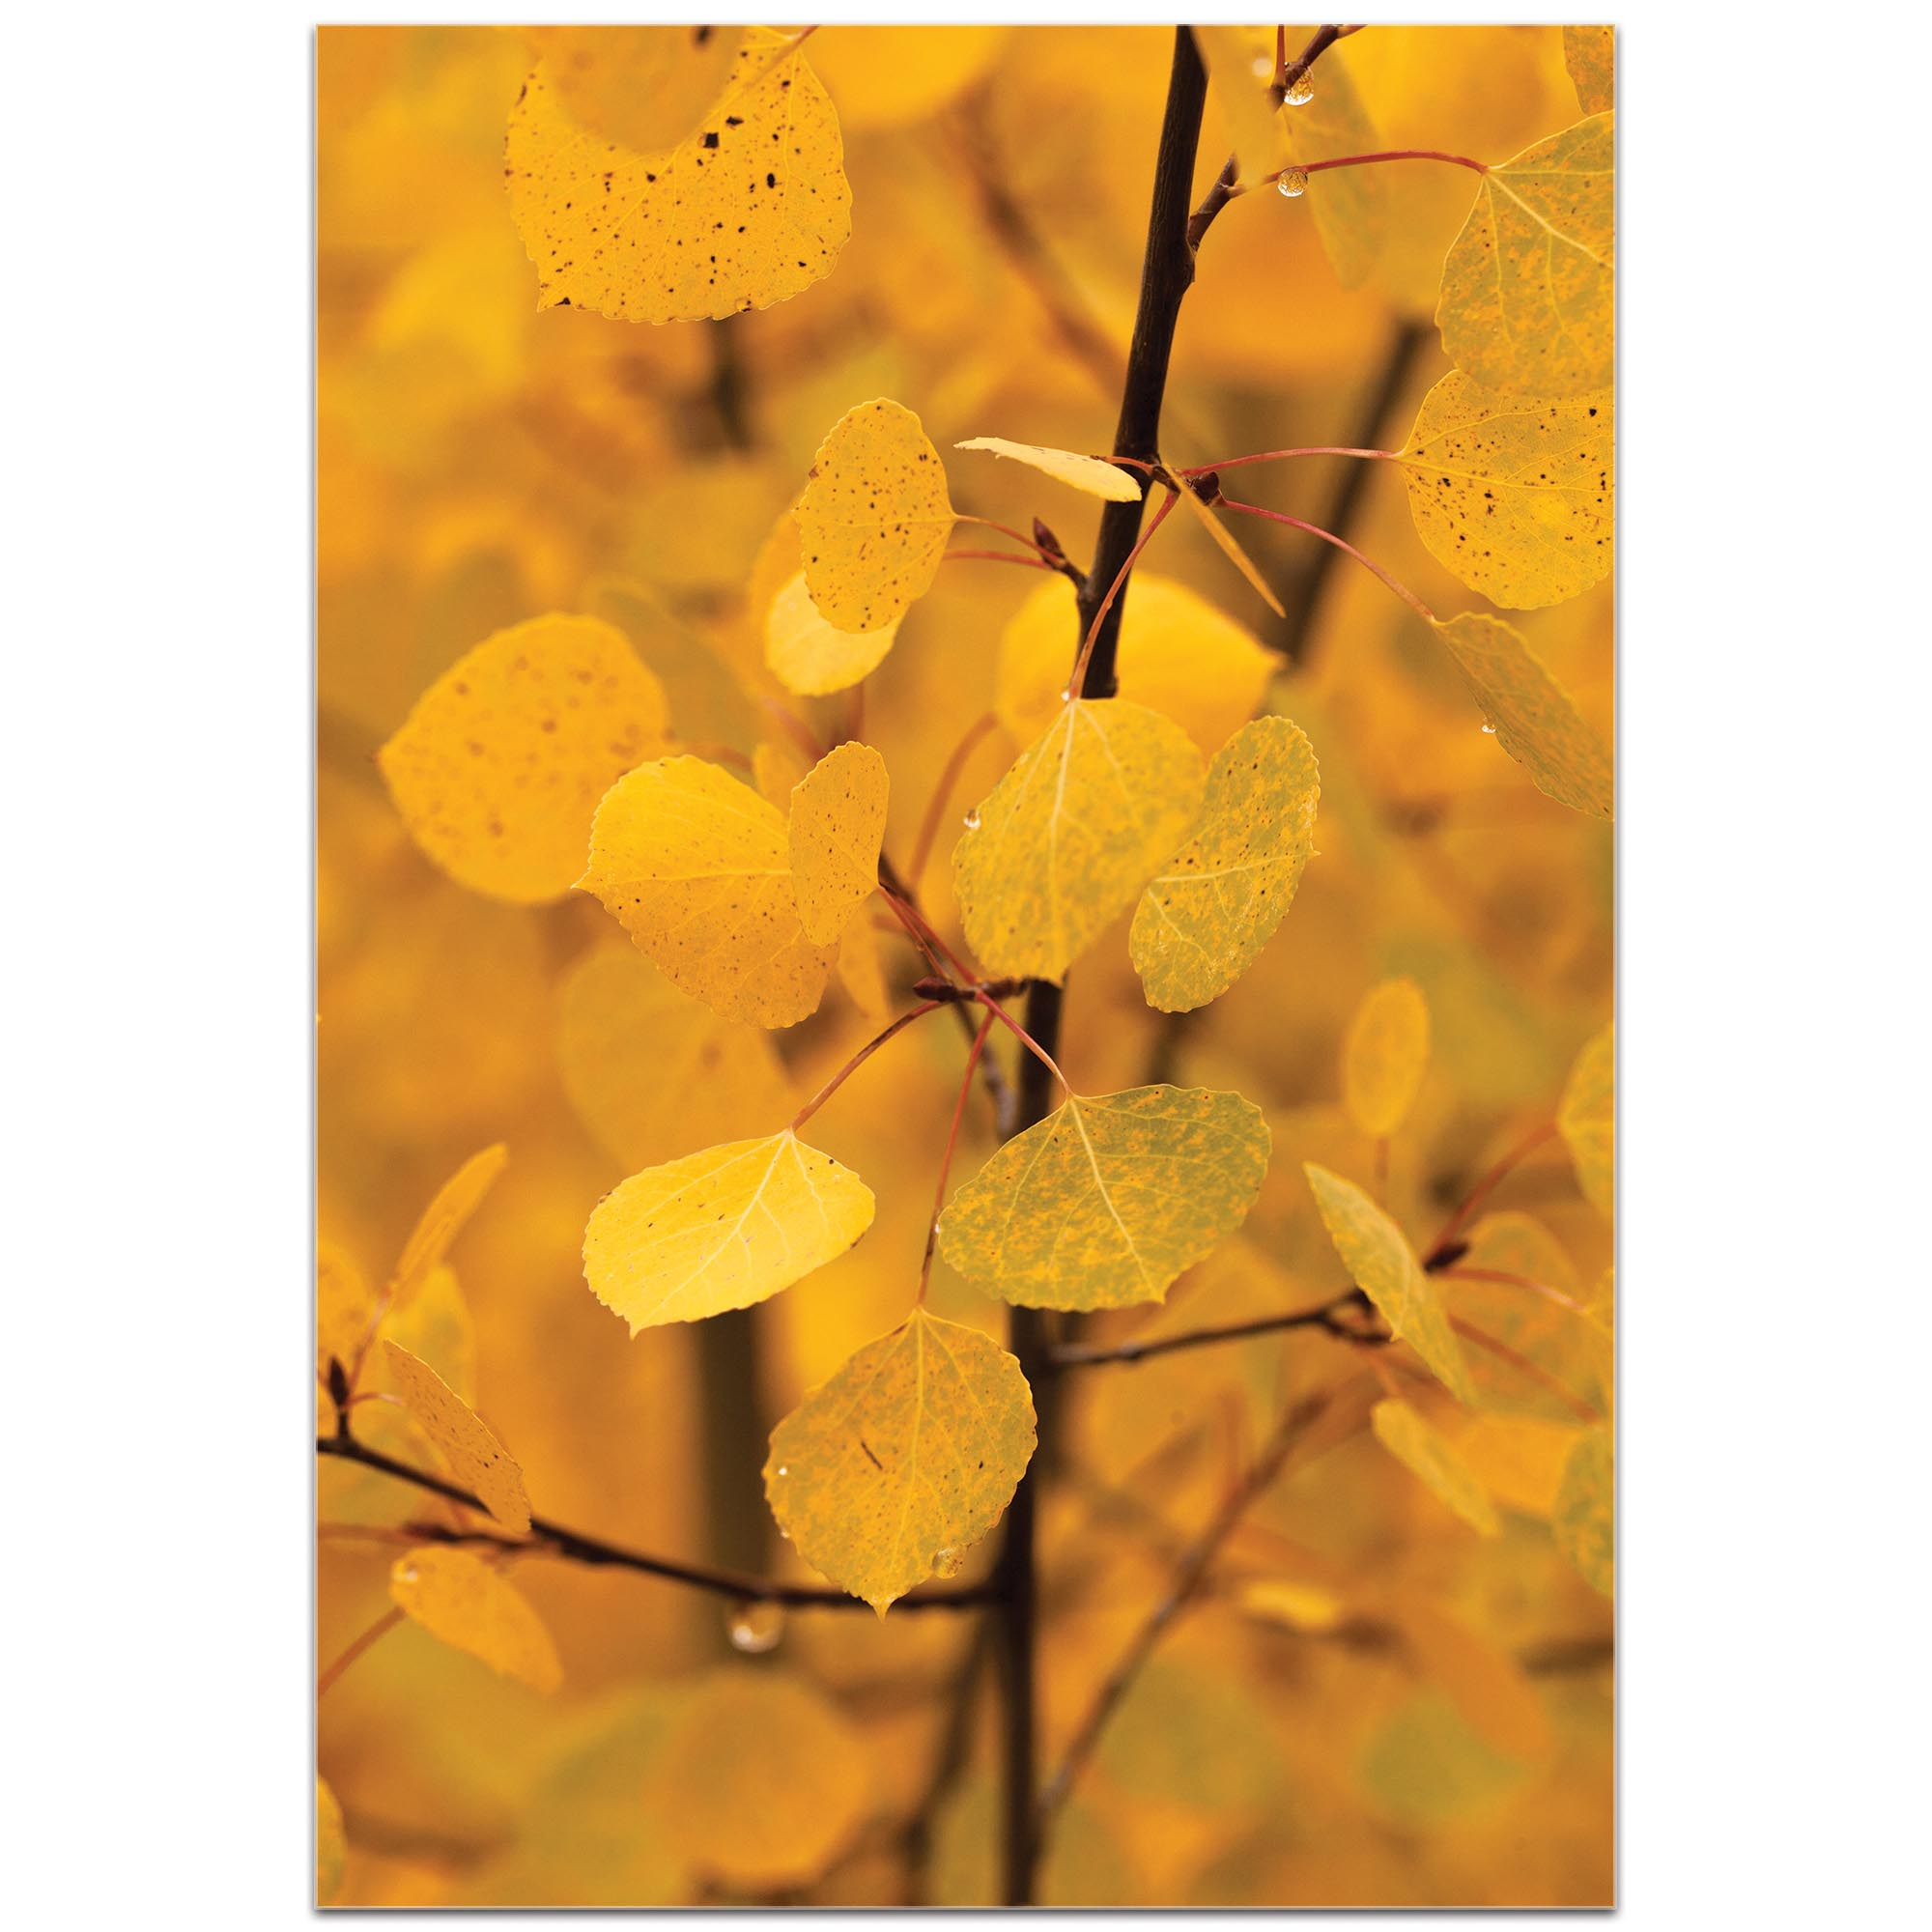 Nature Photography 'Turn to Gold' - Autumn Leaves Art on Metal or Plexiglass - Image 2